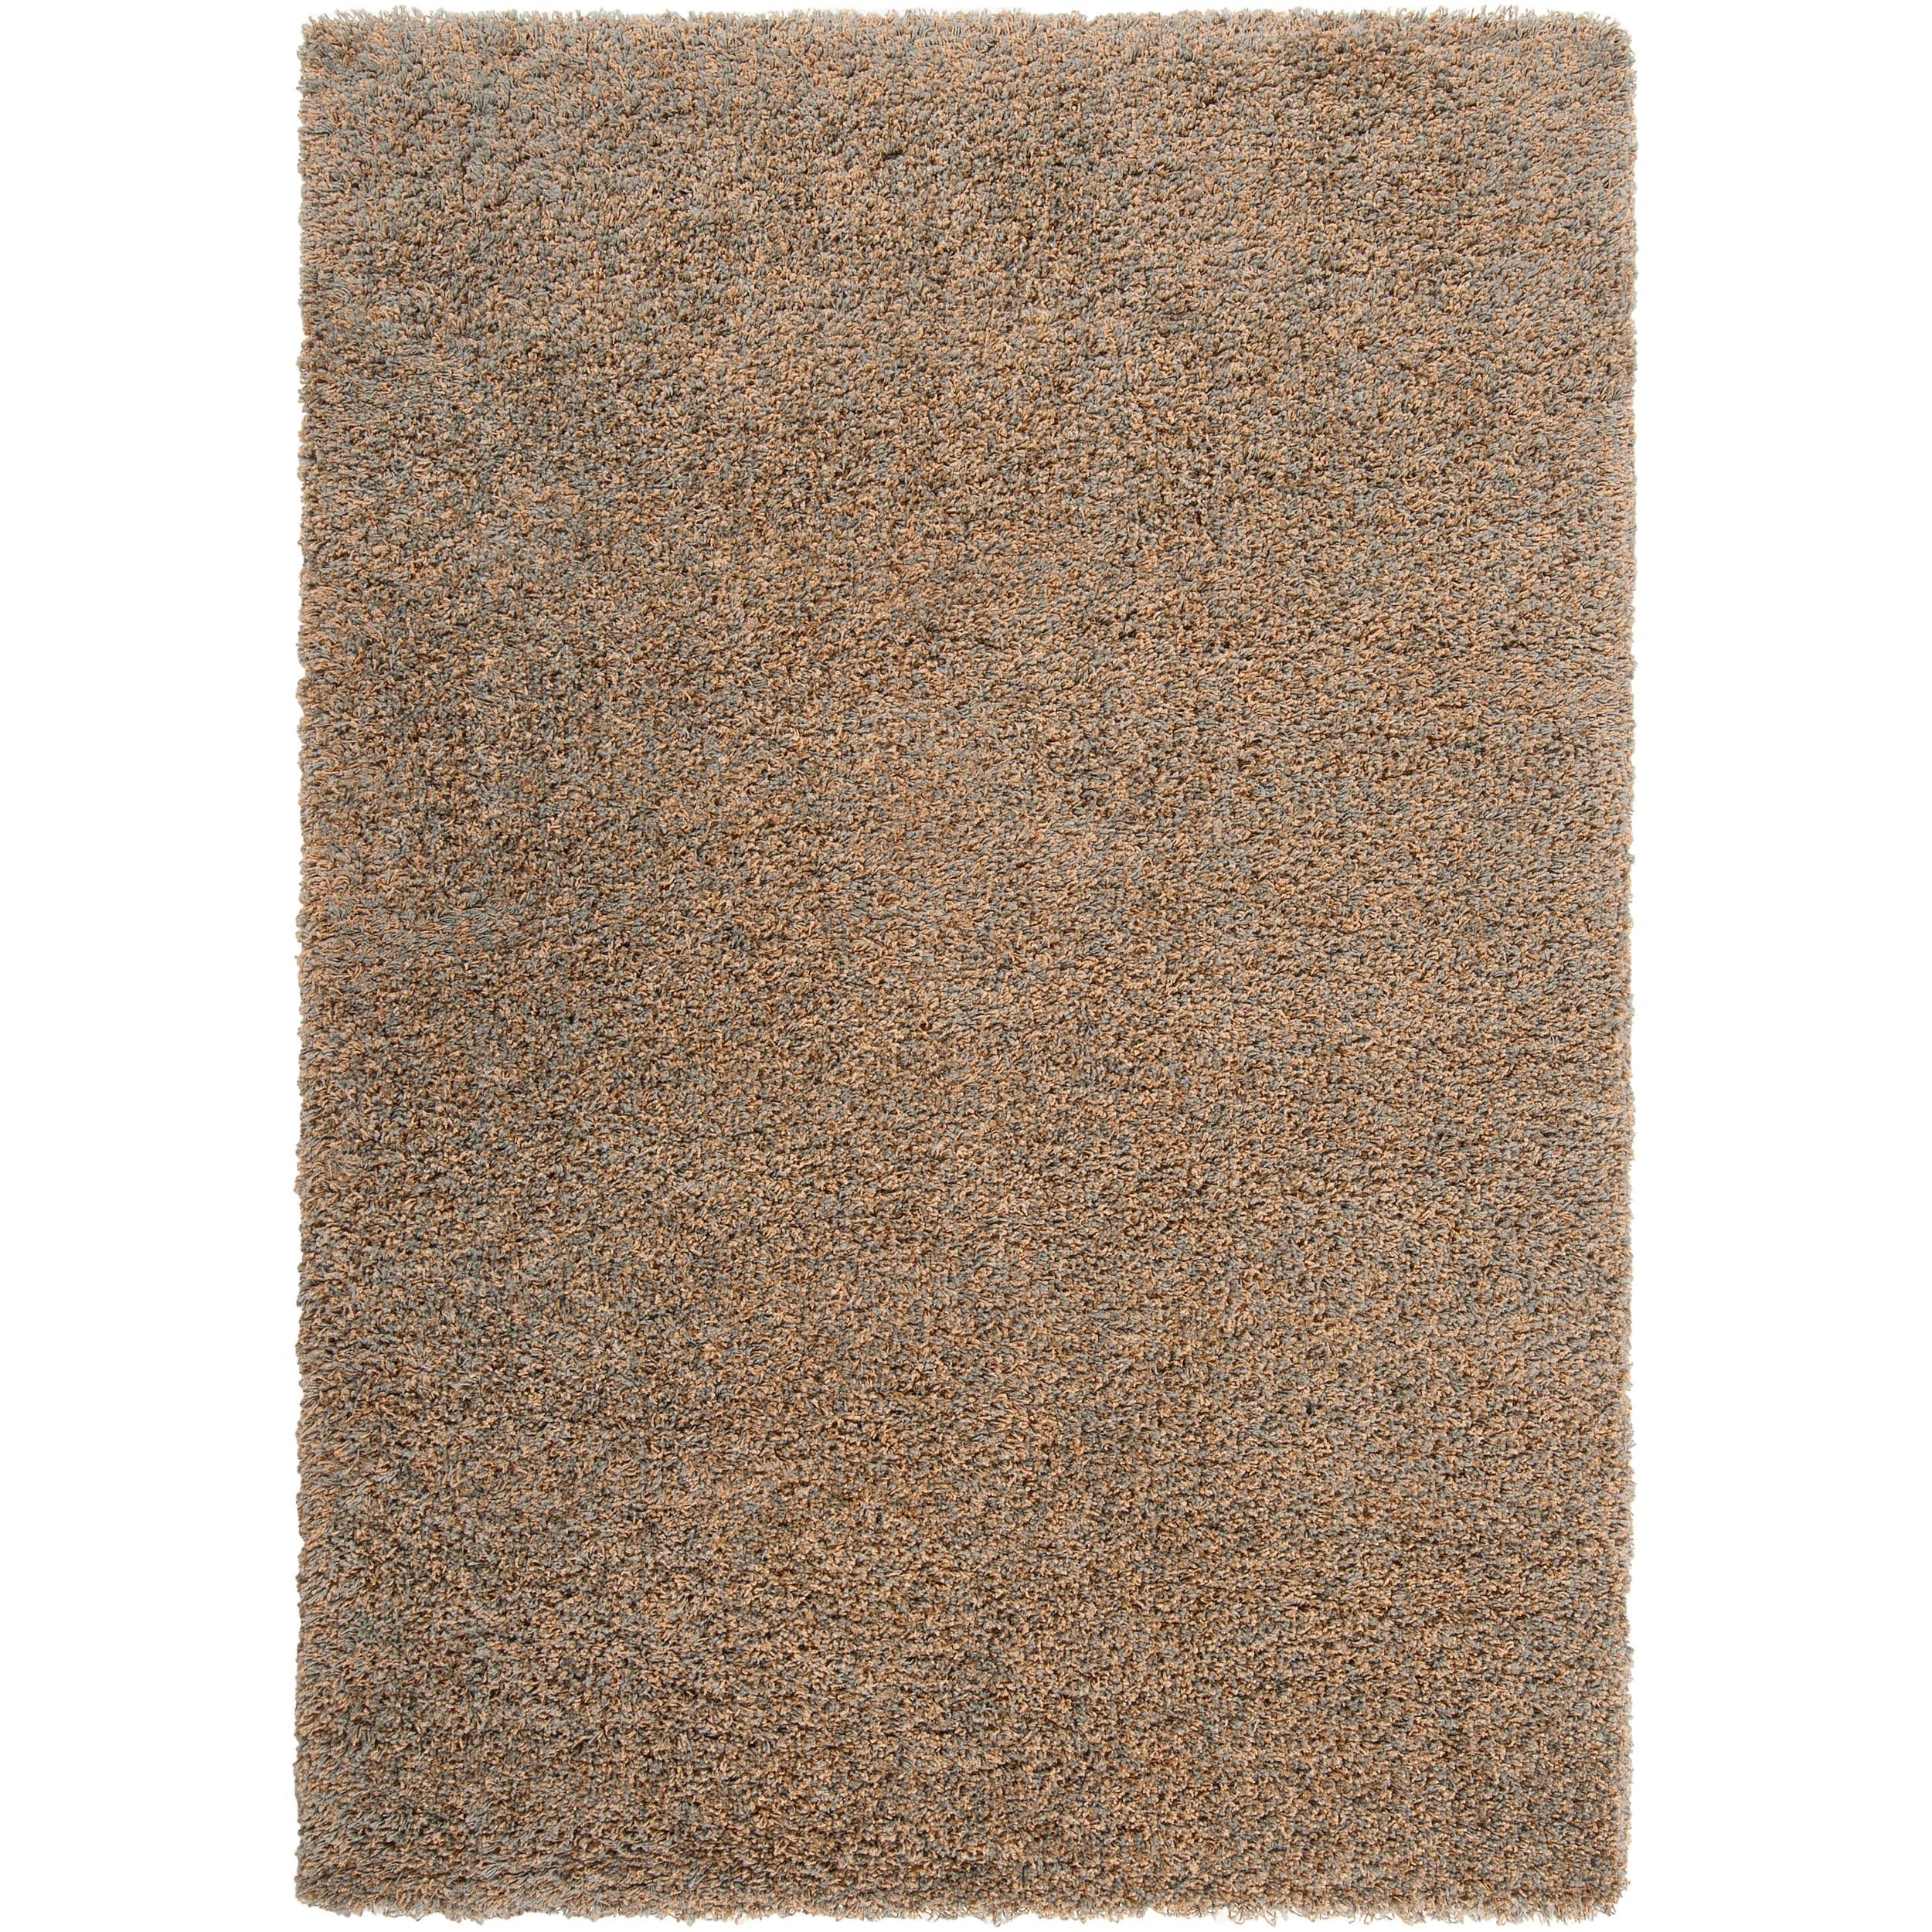 Woven Tan Luxurious Soft Shag Rug (6